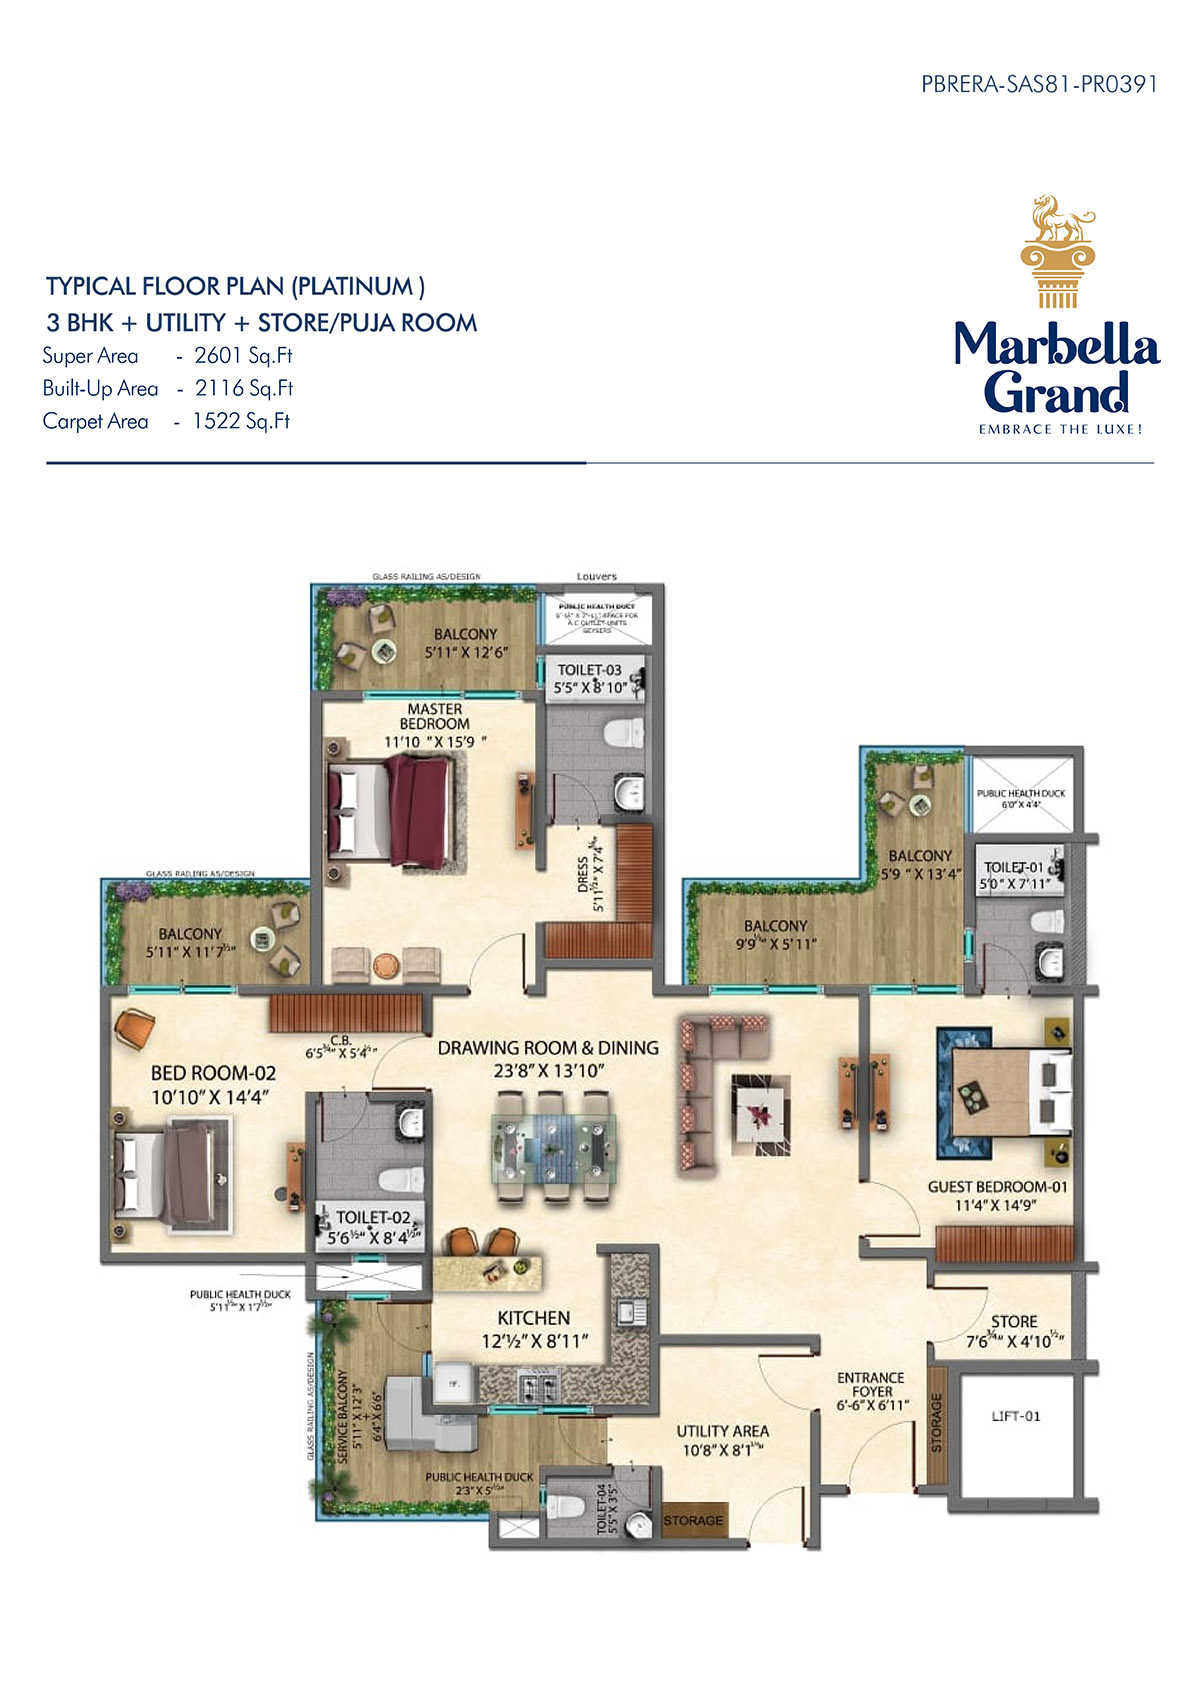 3BHK + STORE/PUJA ROOM - TYPICAL FLOOR PLAN